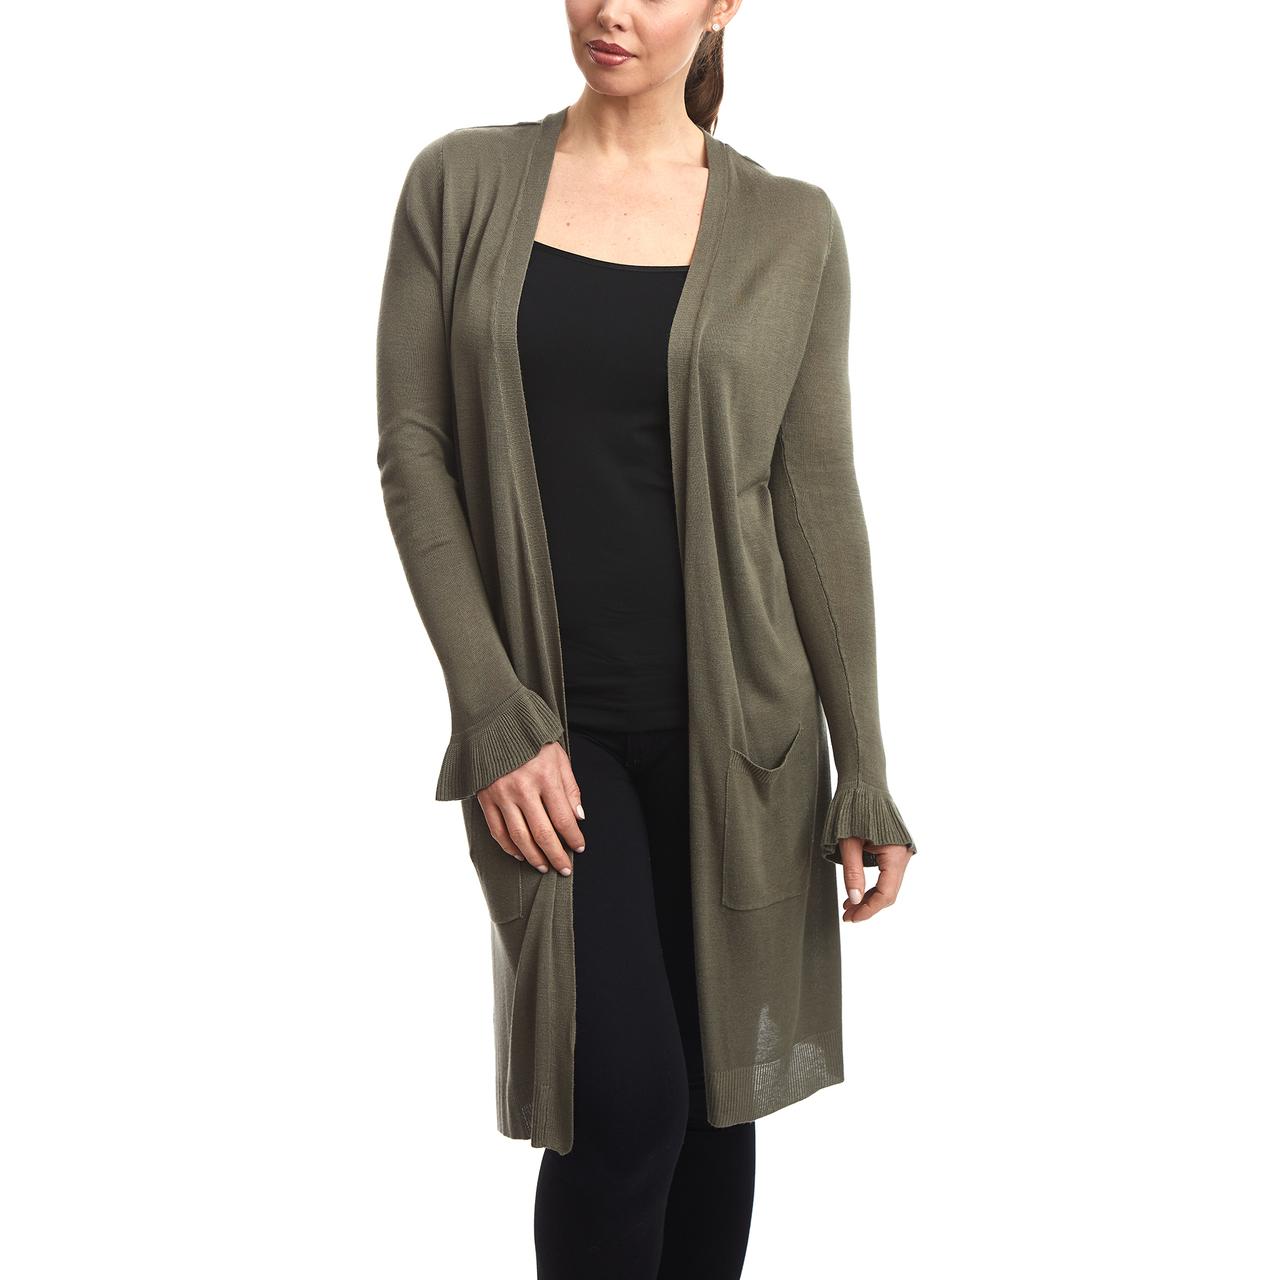 Duster Cardigan with Ruffle Cuff in Olive